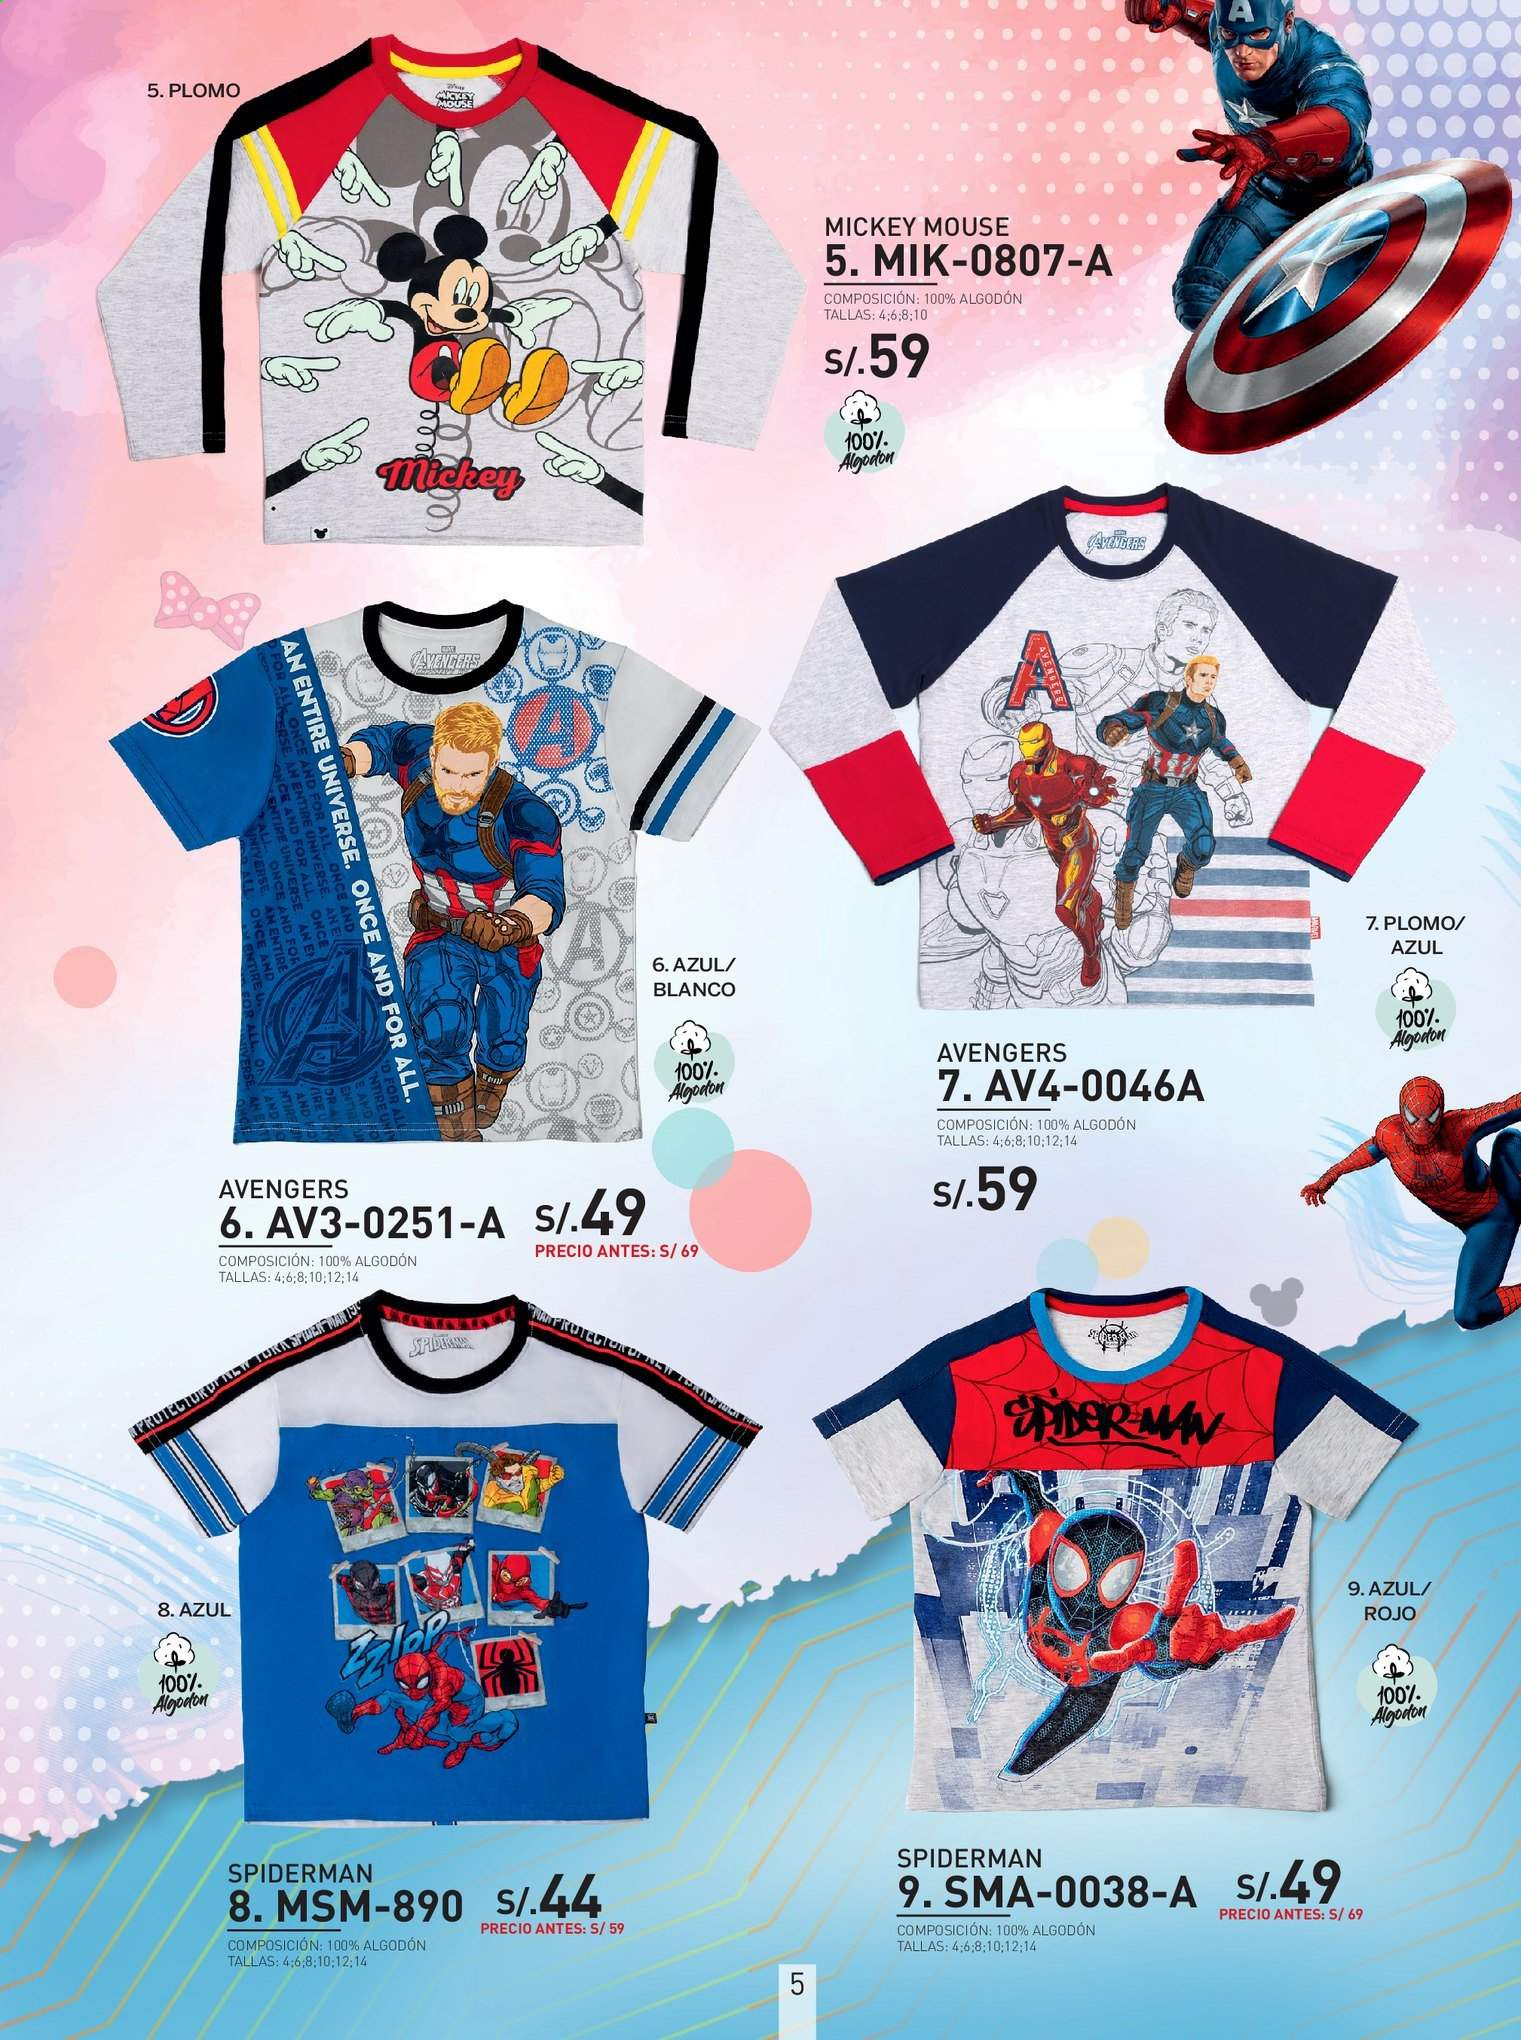 Folleto actual SOKSO - 5.8.2019 - 18.8.2019 - Ventas - spiderman, mickey mouse. Página 5.